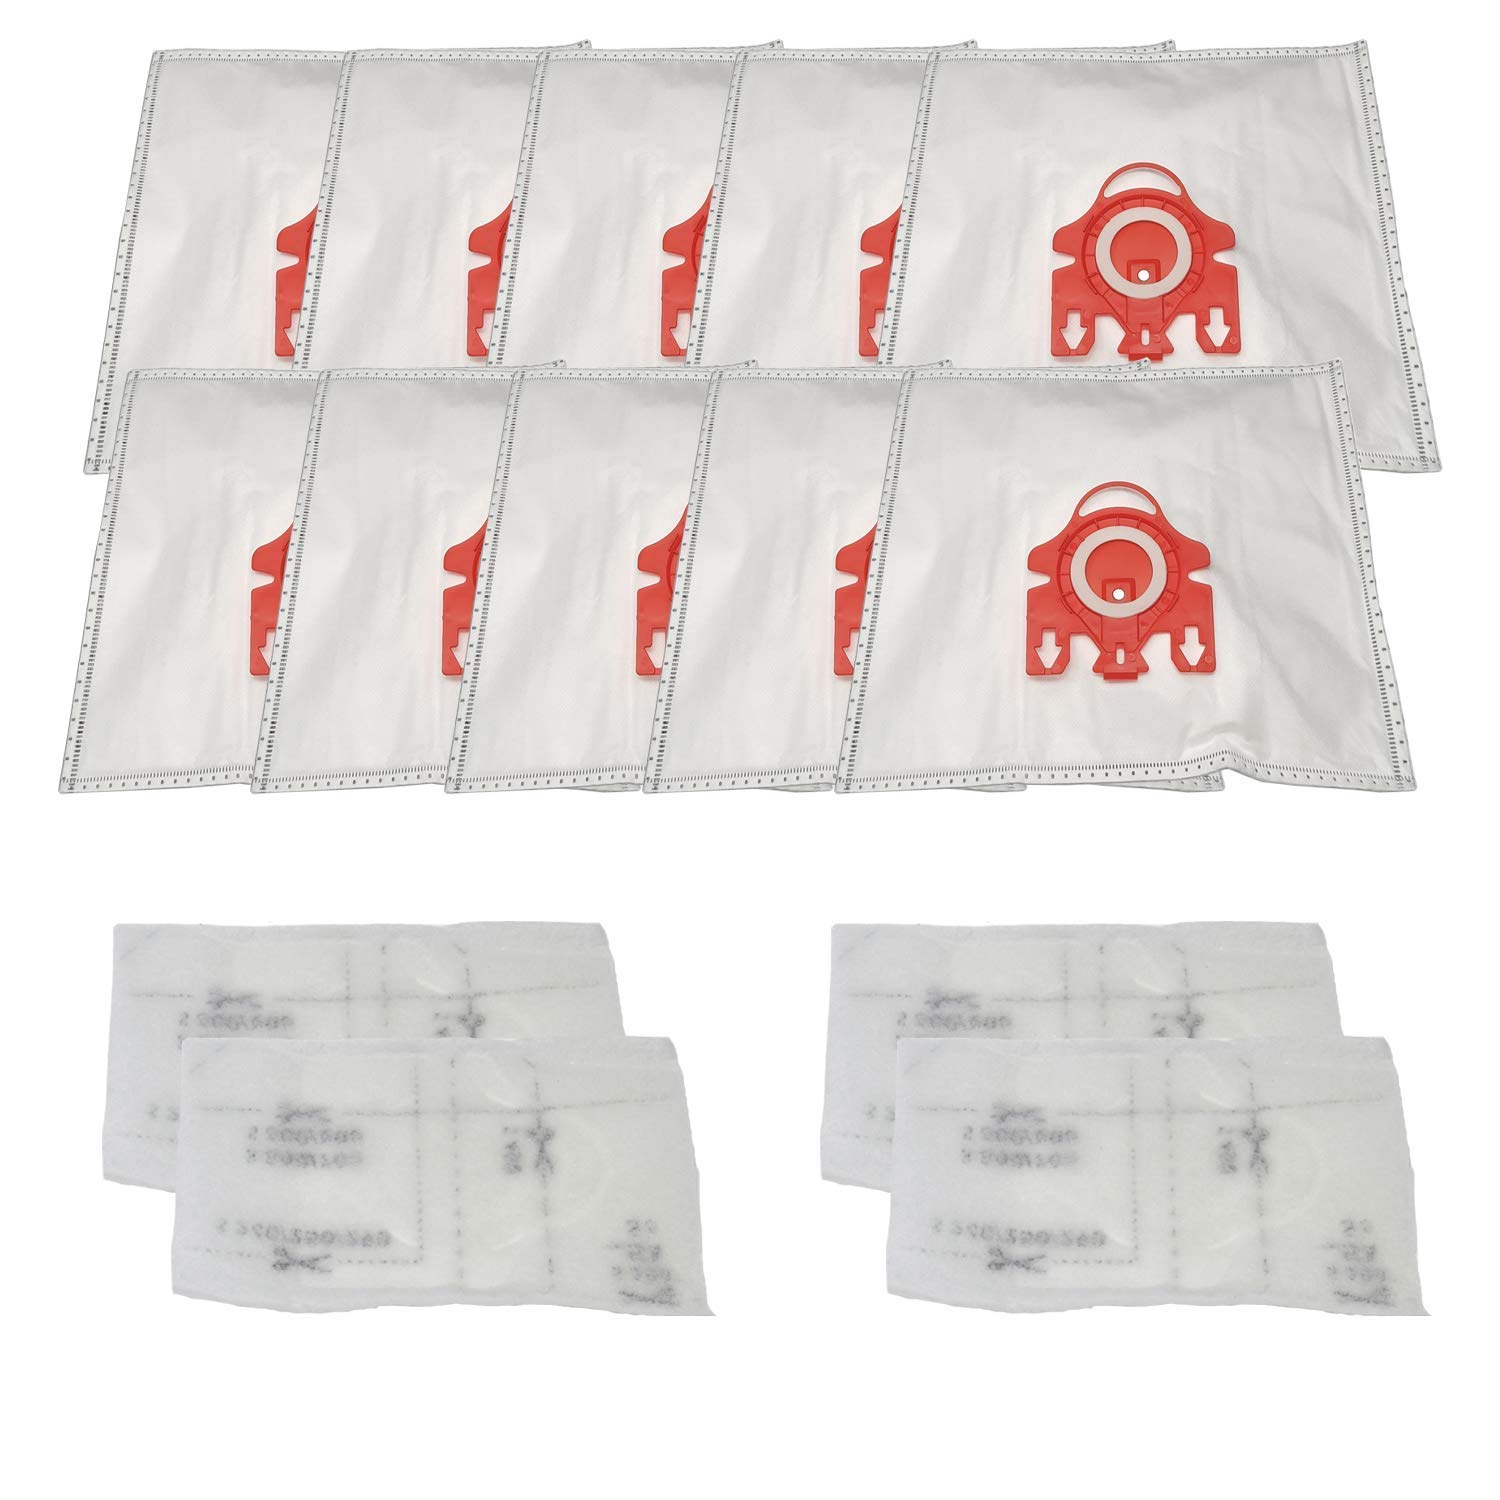 20 X Miele S241 To S256i FJM Type Vacuum Cleaner Hoover Dust Bags /& Filters